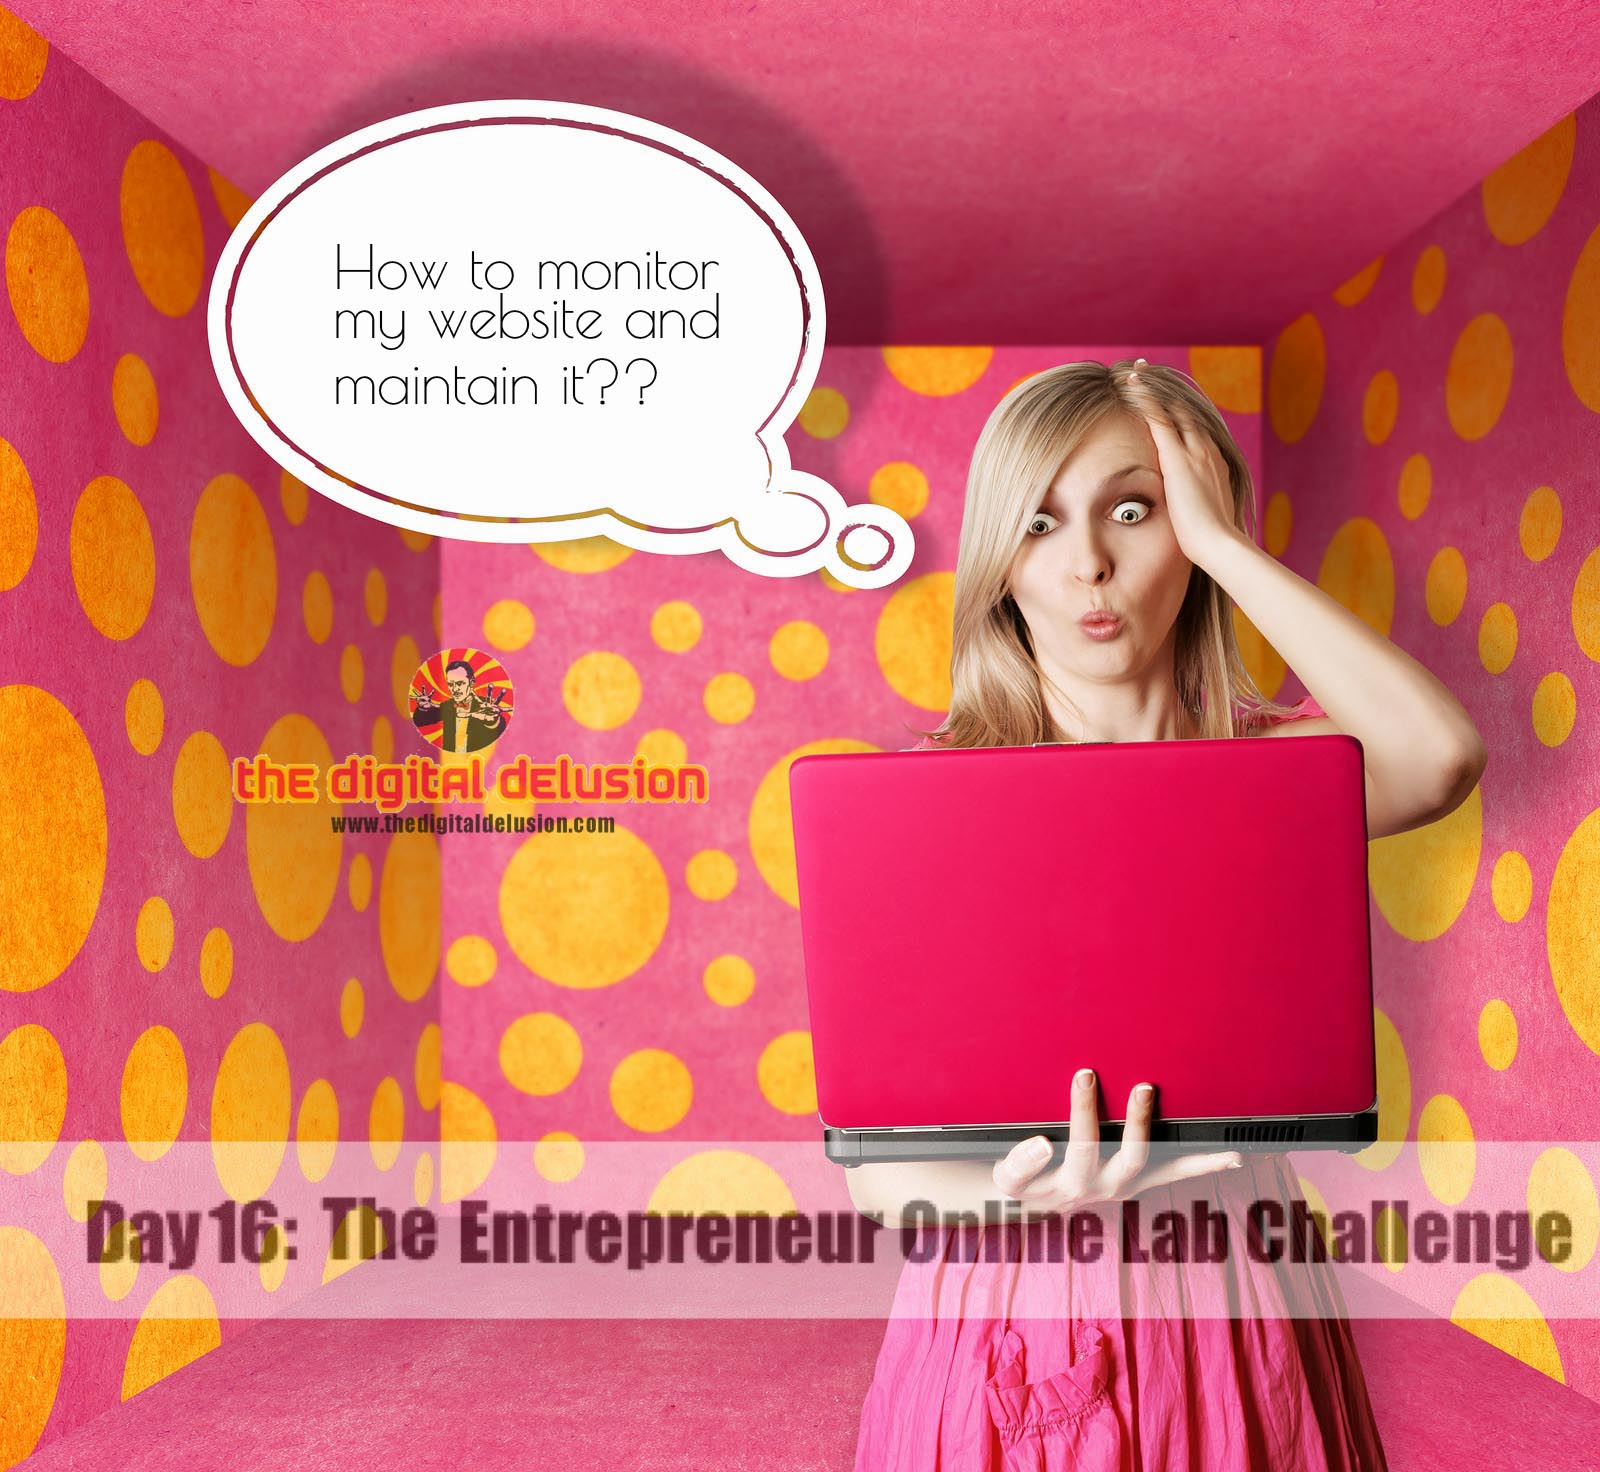 The Digital Delusion Day 16 Entrepreneur Online Lab Challenge-1-2